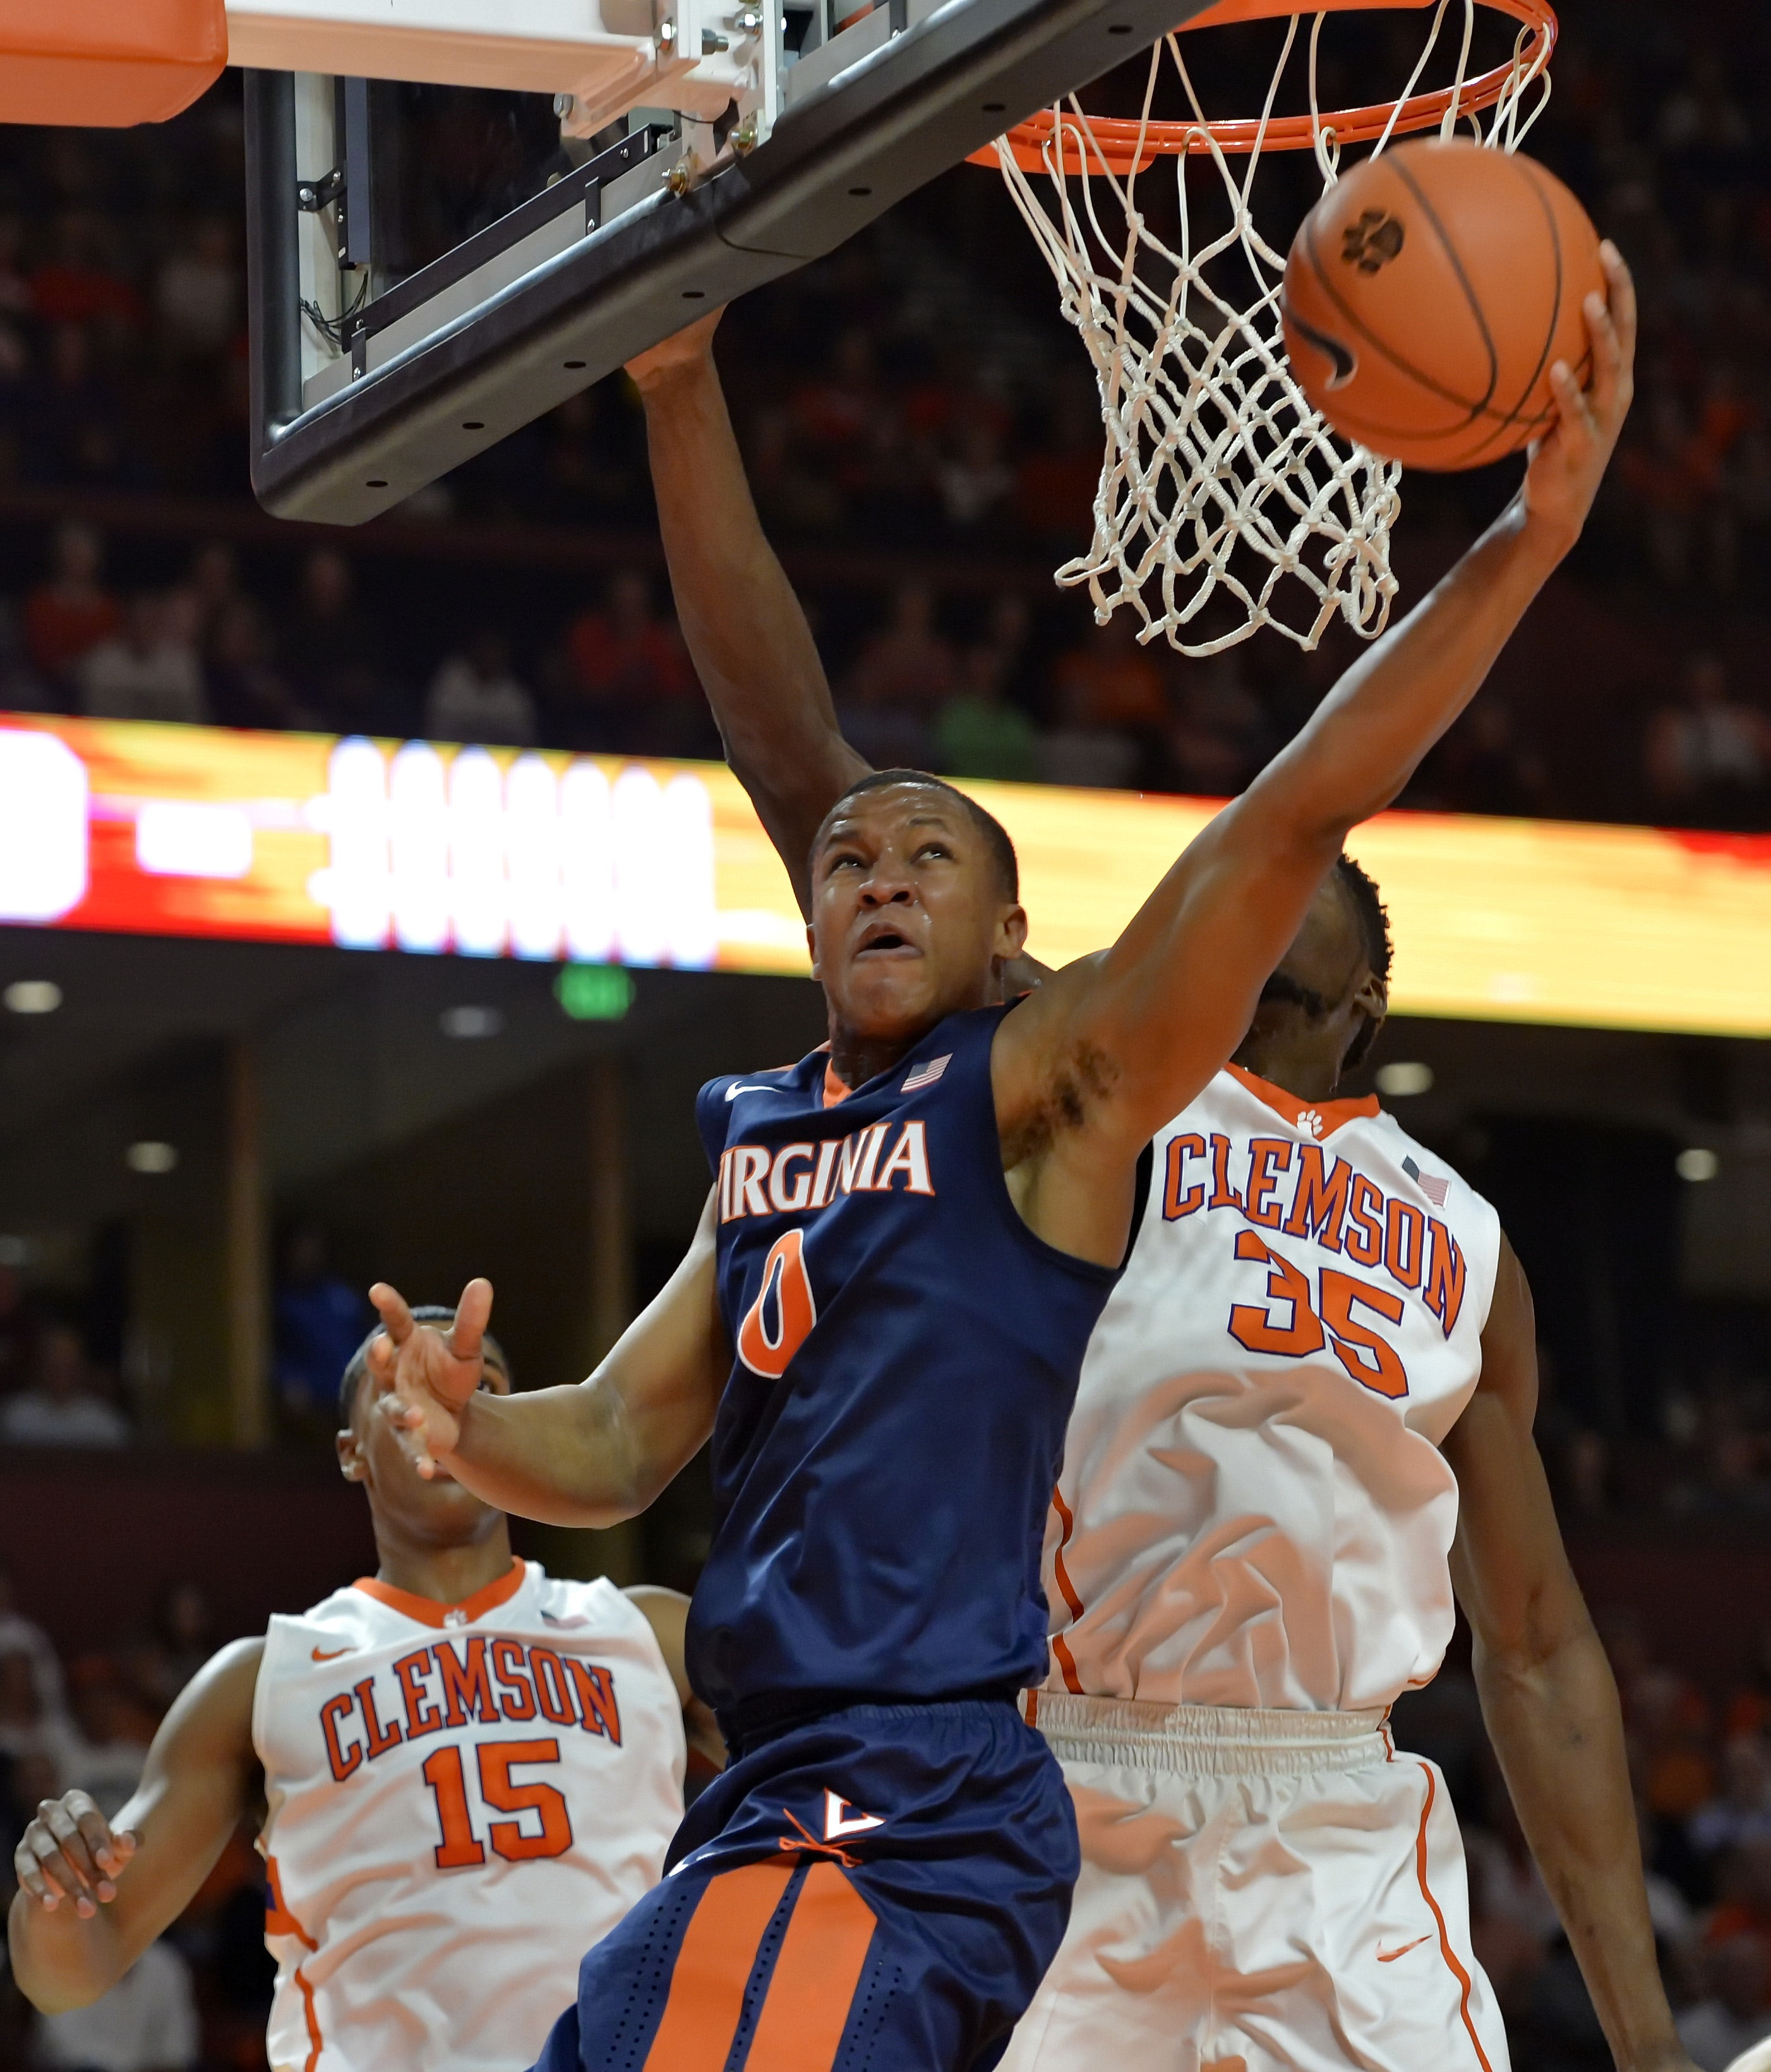 Virginia's Devon Hall drives in for a layup while defended by Clemson's Landry Nnoko, right, during the first half of an NCAA college basketball game Tuesday, March 1, 2016, in Greenville, S.C.  (AP Photo/Richard Shiro)